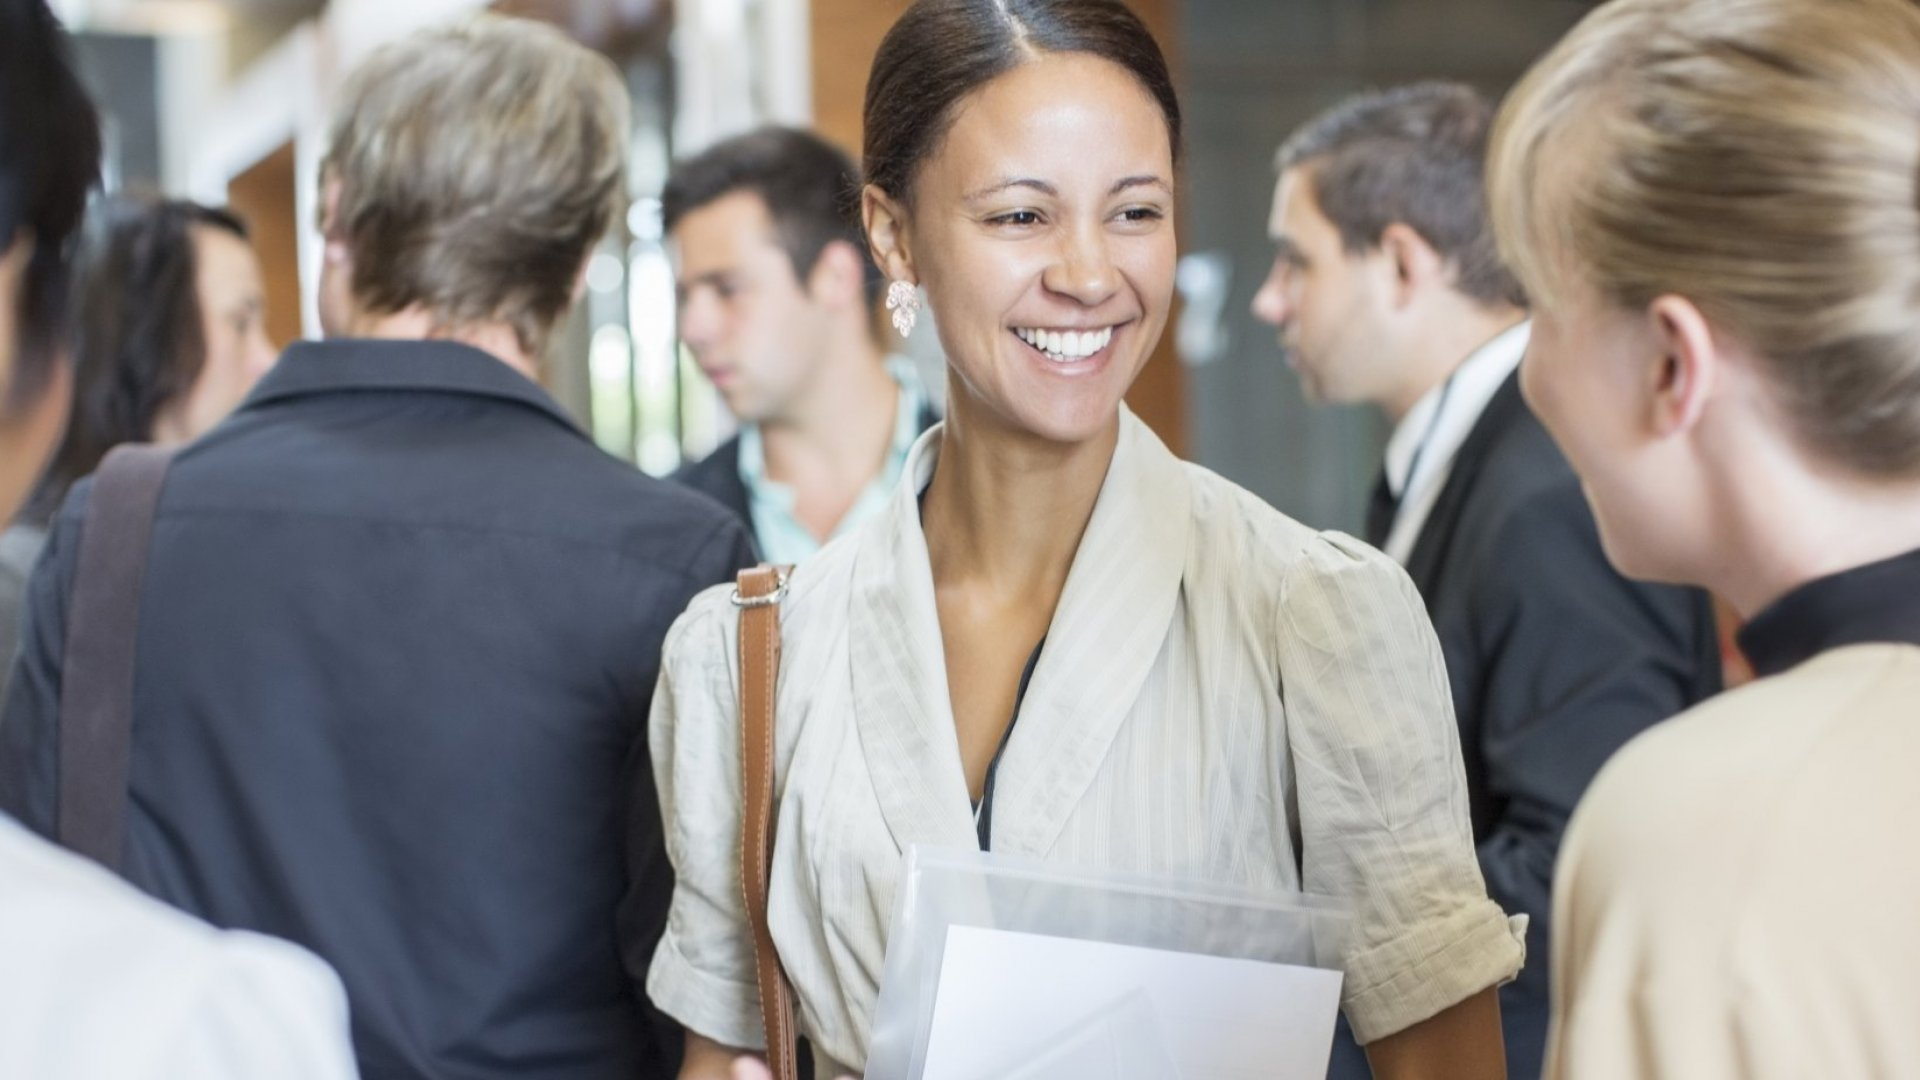 3 Great Networking Tips for Introverts